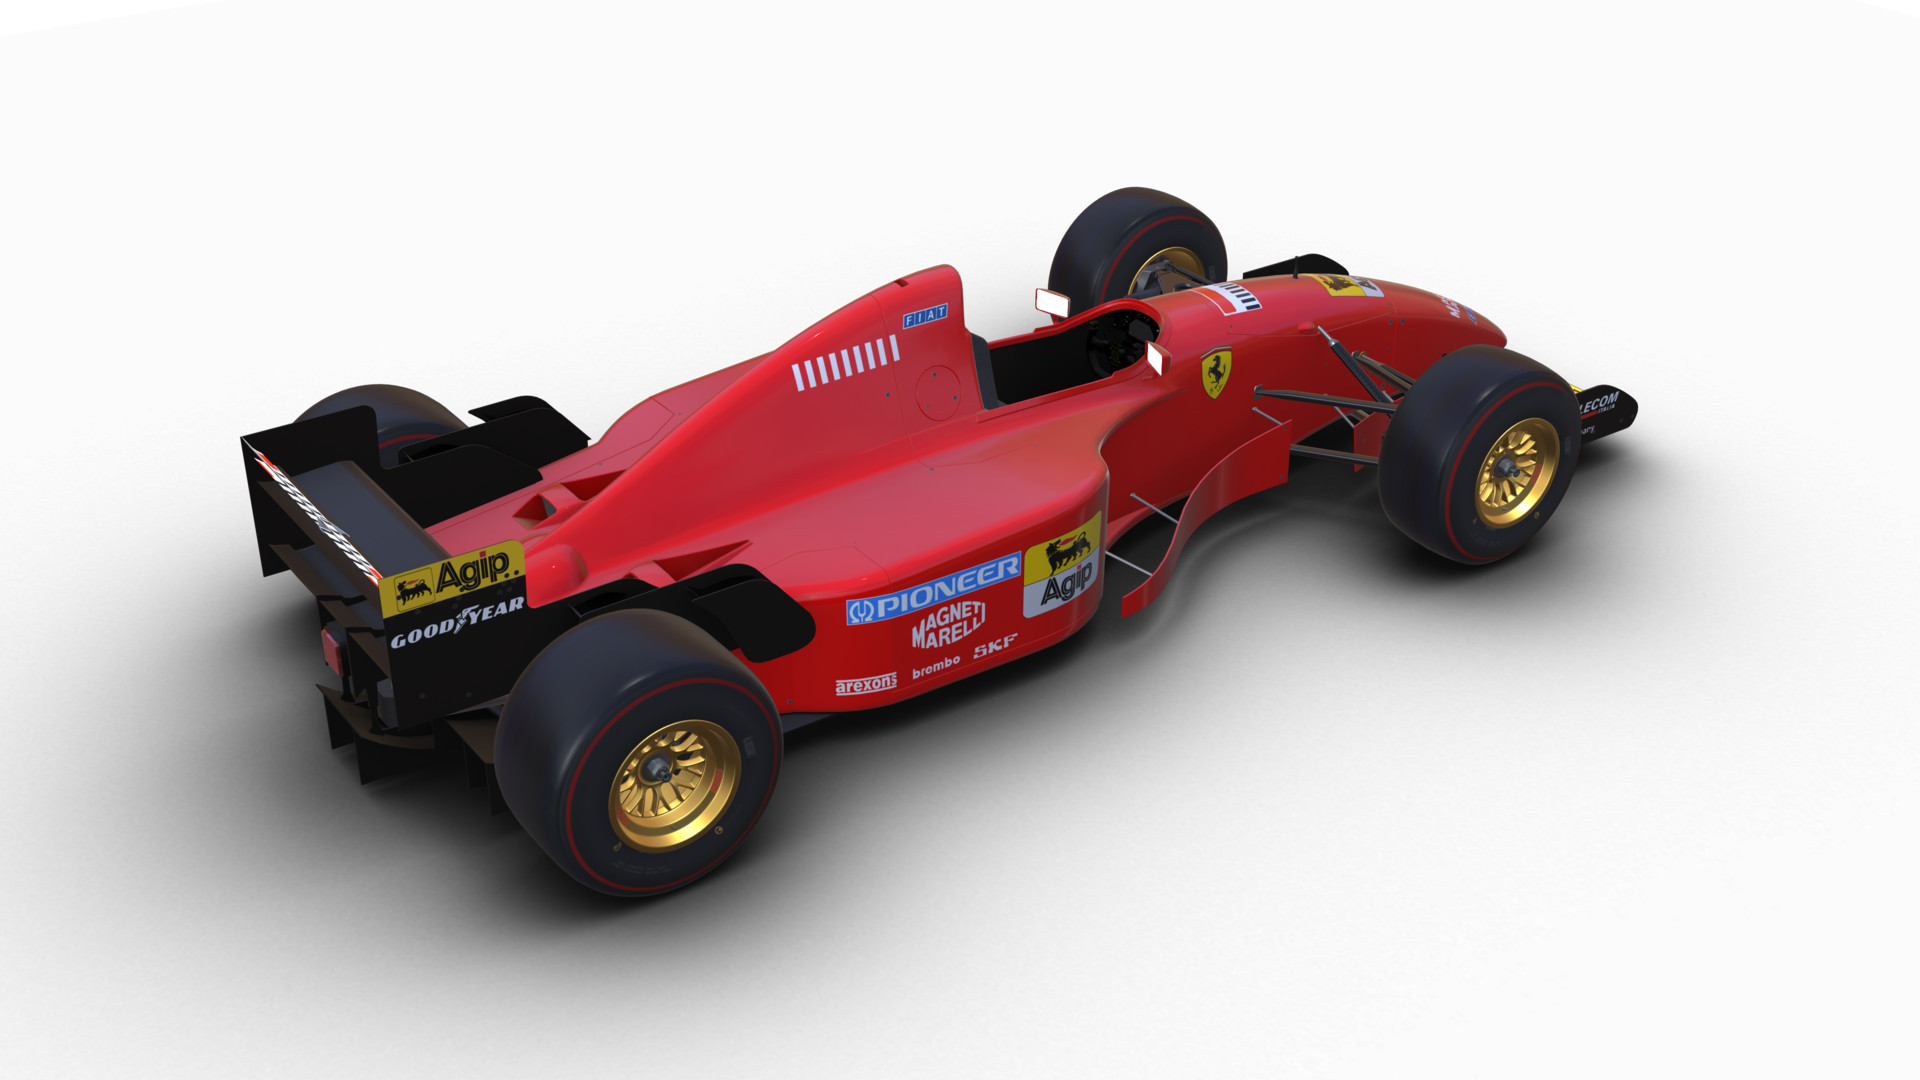 Ferrari 412 t2 previous image next image - Scroll To See More